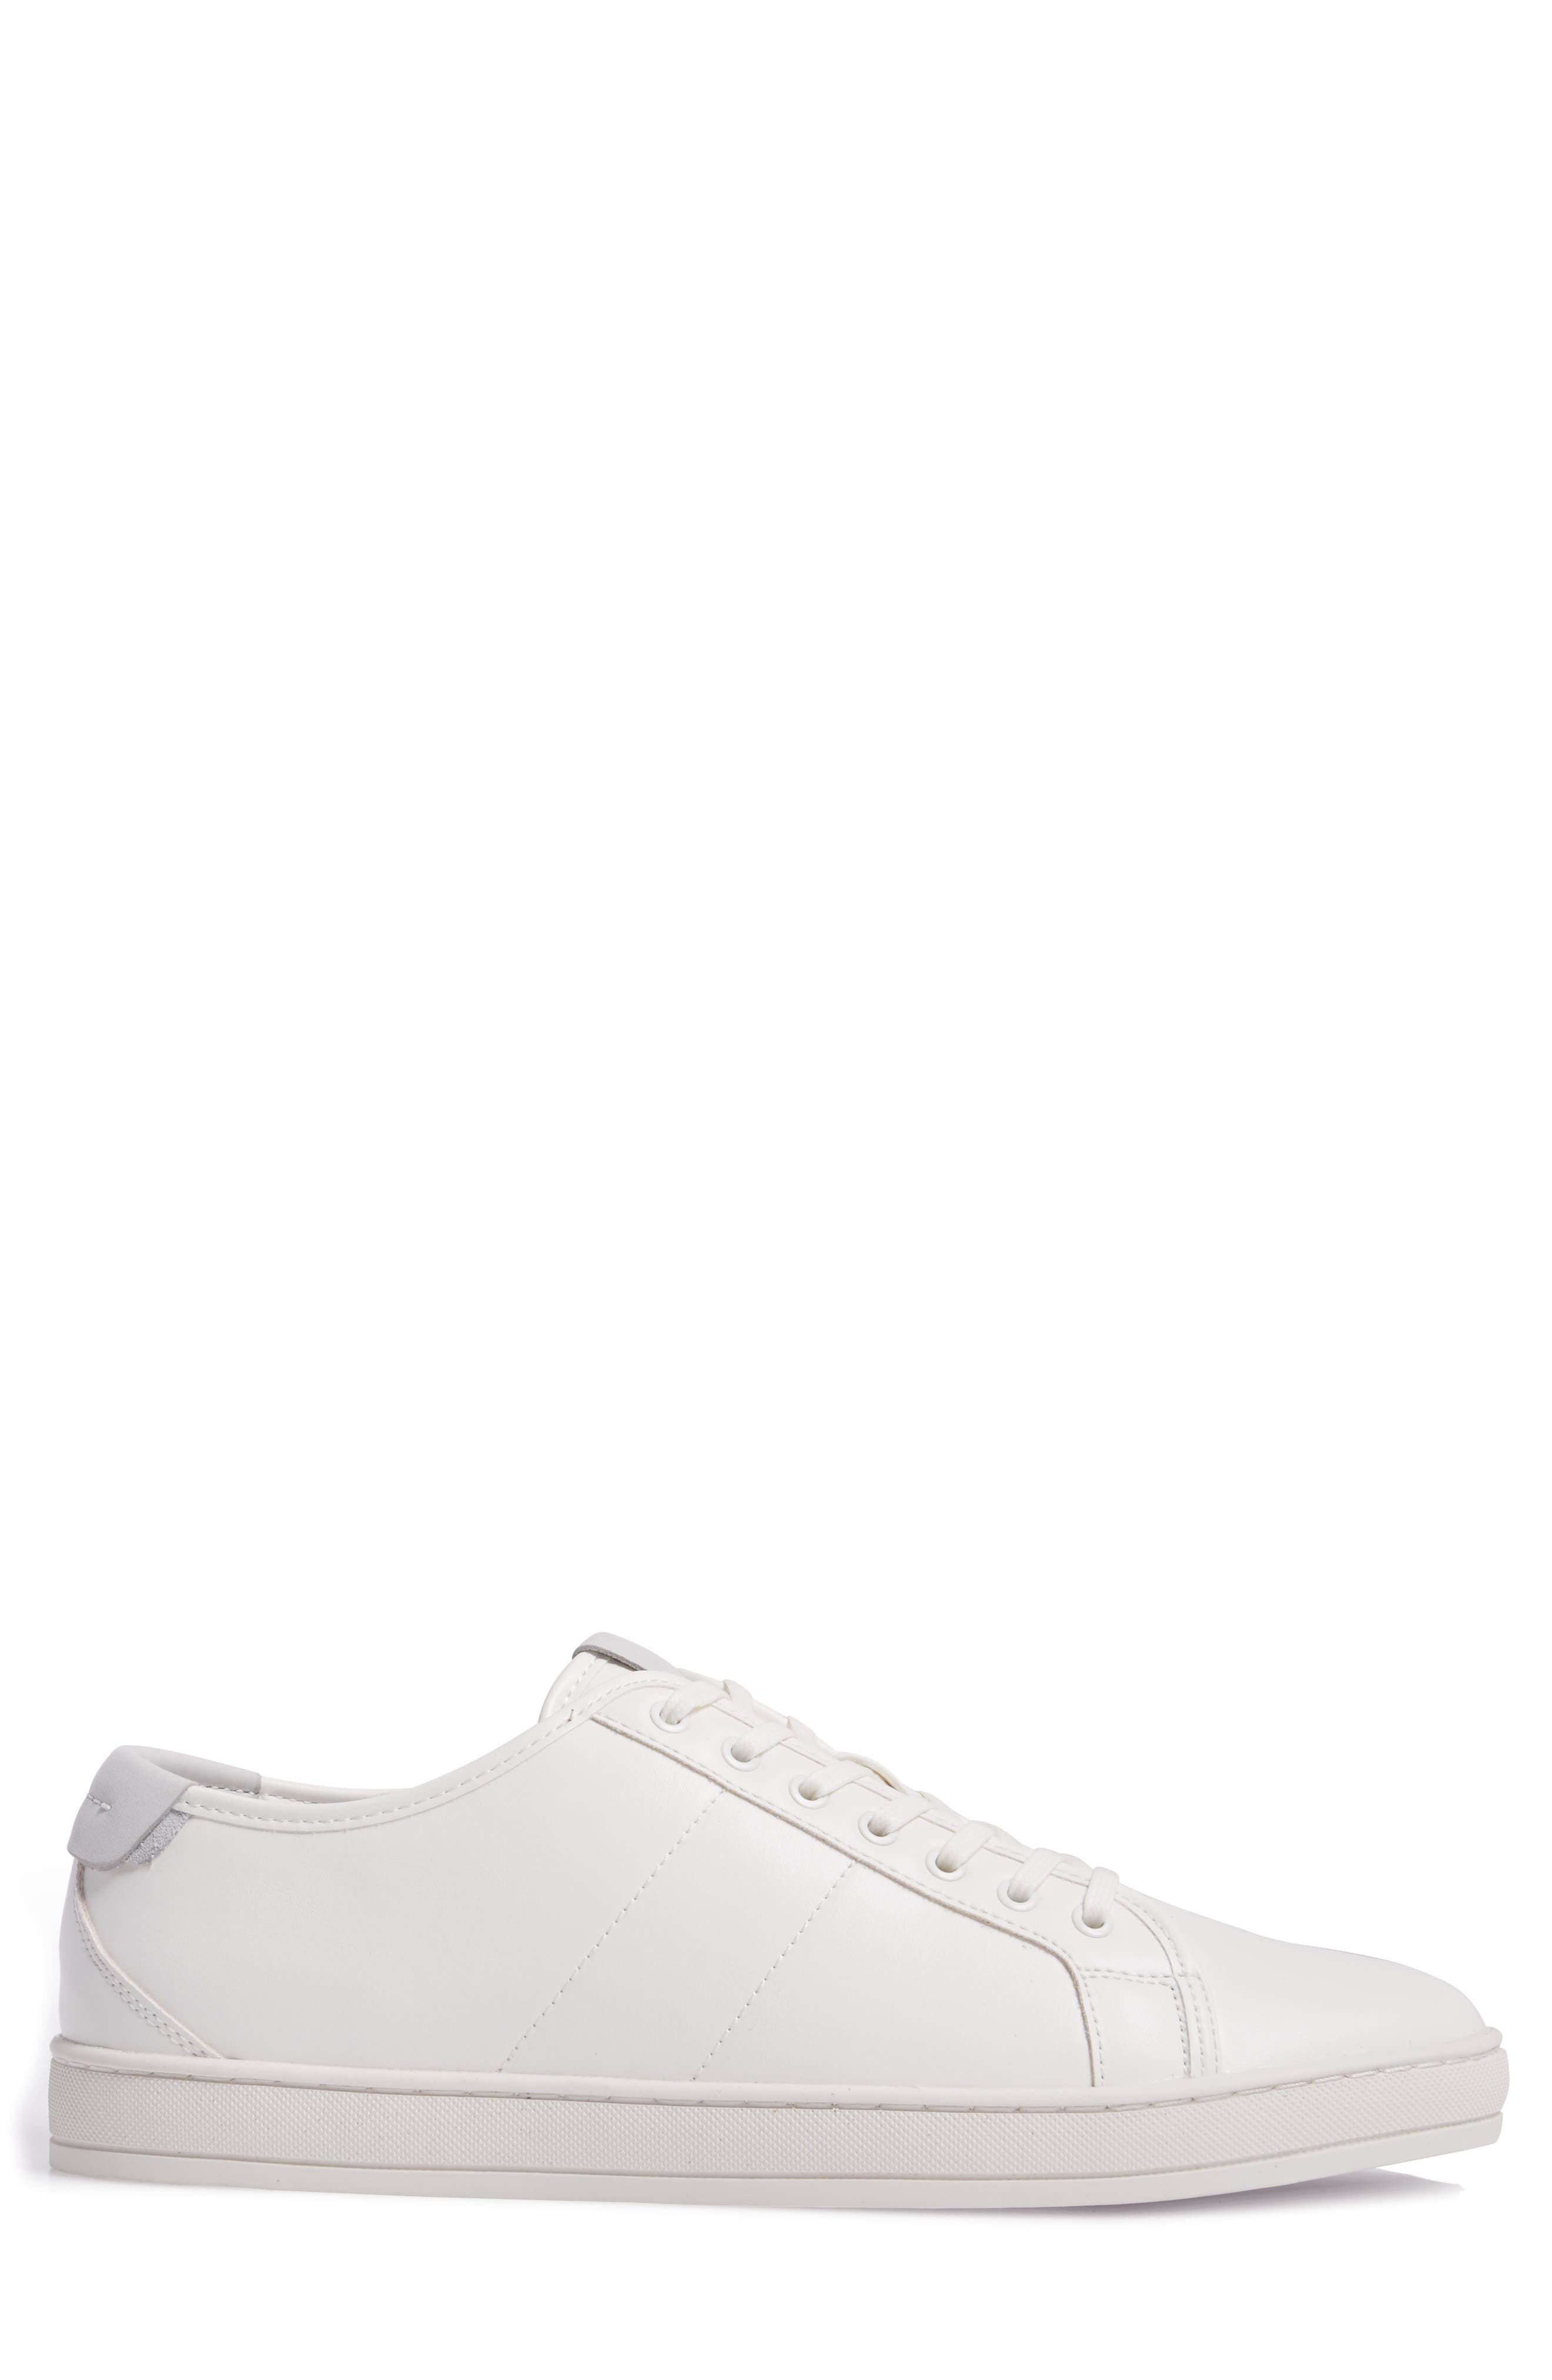 Delello Low-Top Sneaker,                             Alternate thumbnail 3, color,                             White